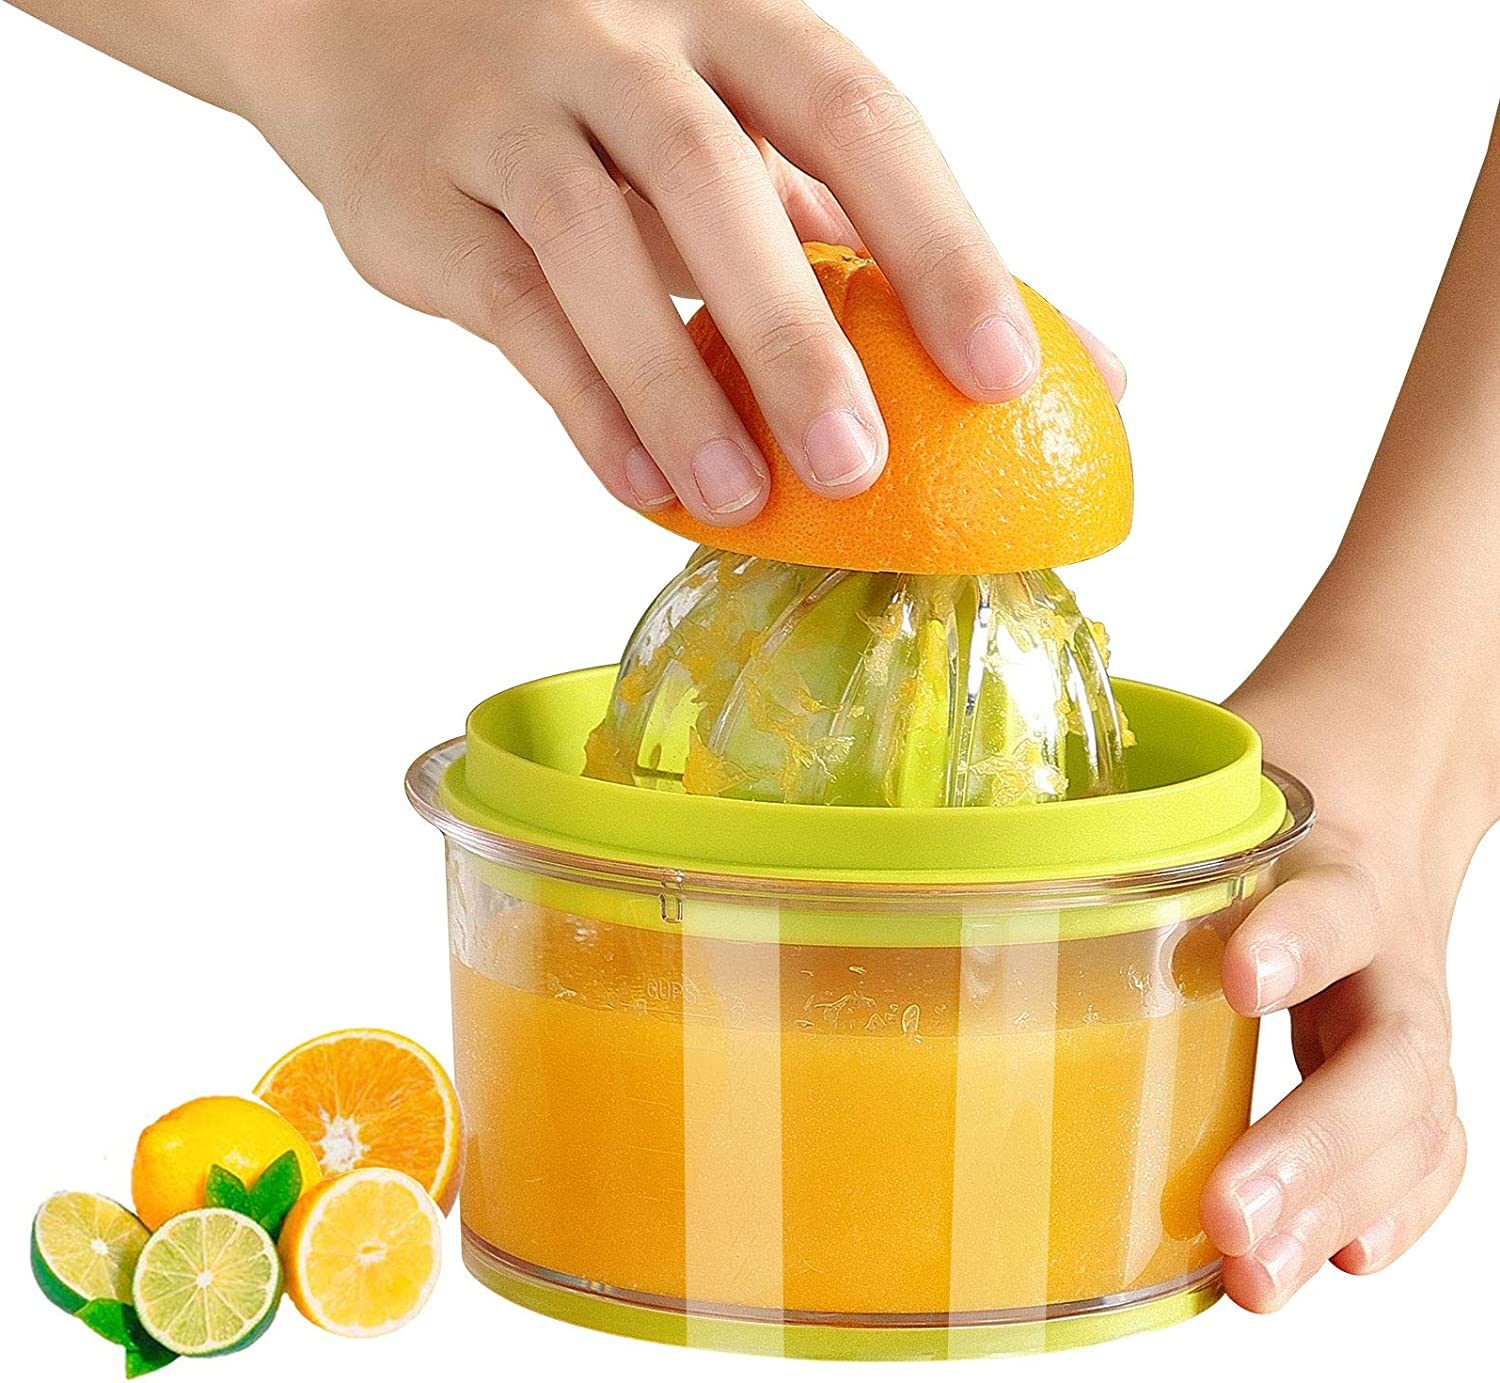 Citrus Lemon Orange Juicer, Manual Hand Squeezer with Built-in 16OZ Measuring Cup and Grater Multi-function Manual Juicer with Multi-size Reamers, Ginger Garlic Cheese Grater, With Non-Slip Base (green)